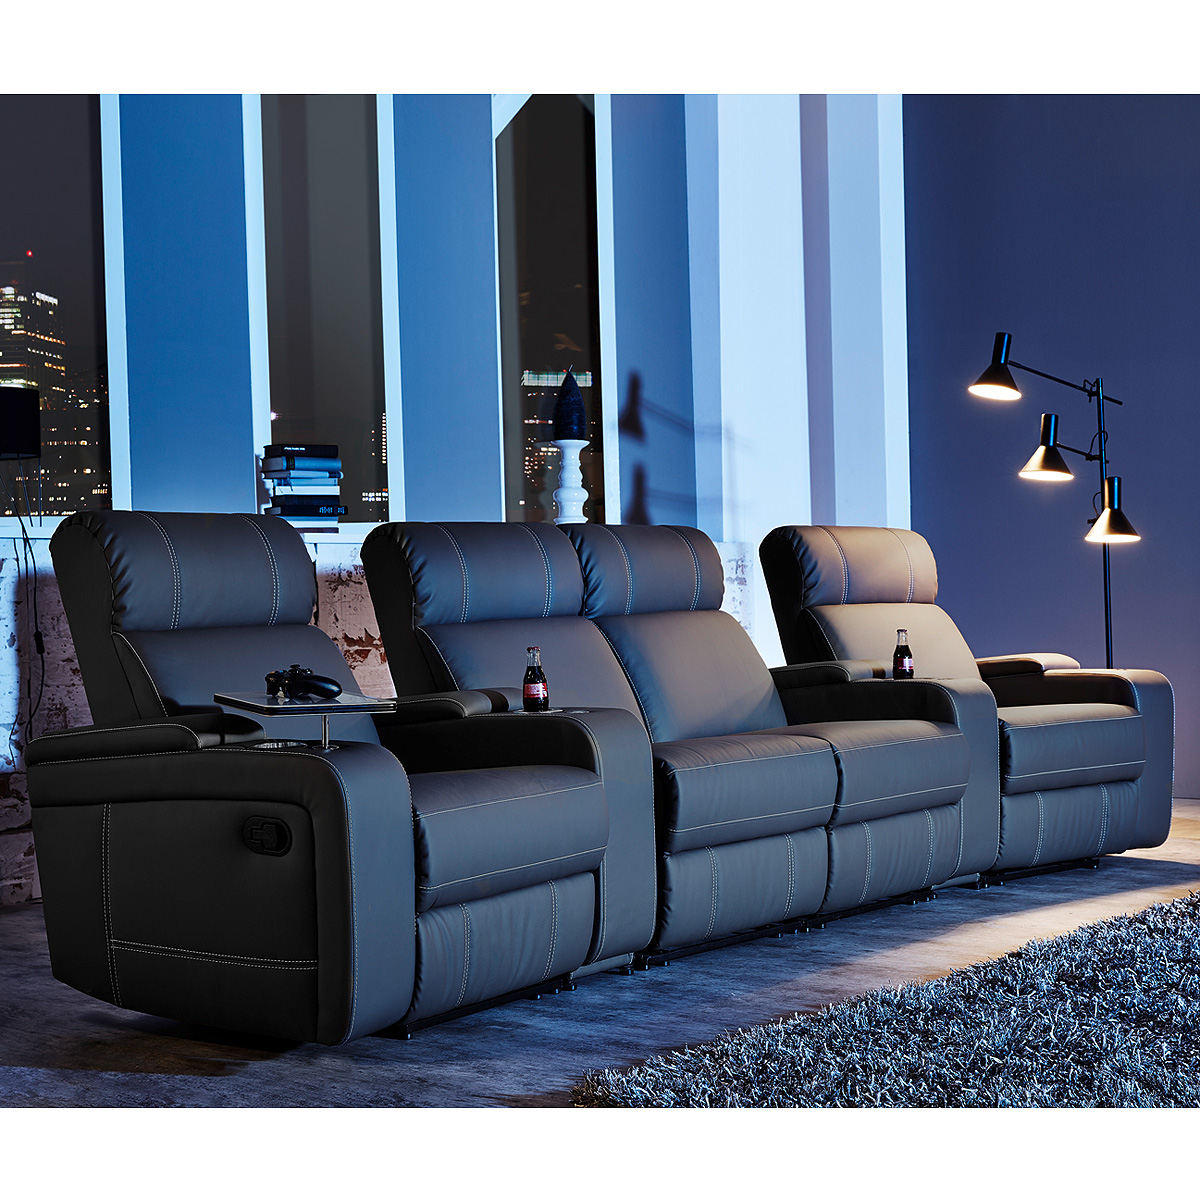 Kinosessel Preis Cinema Sessel Hollywood 4er Kinosessel Kinosofa Sofa